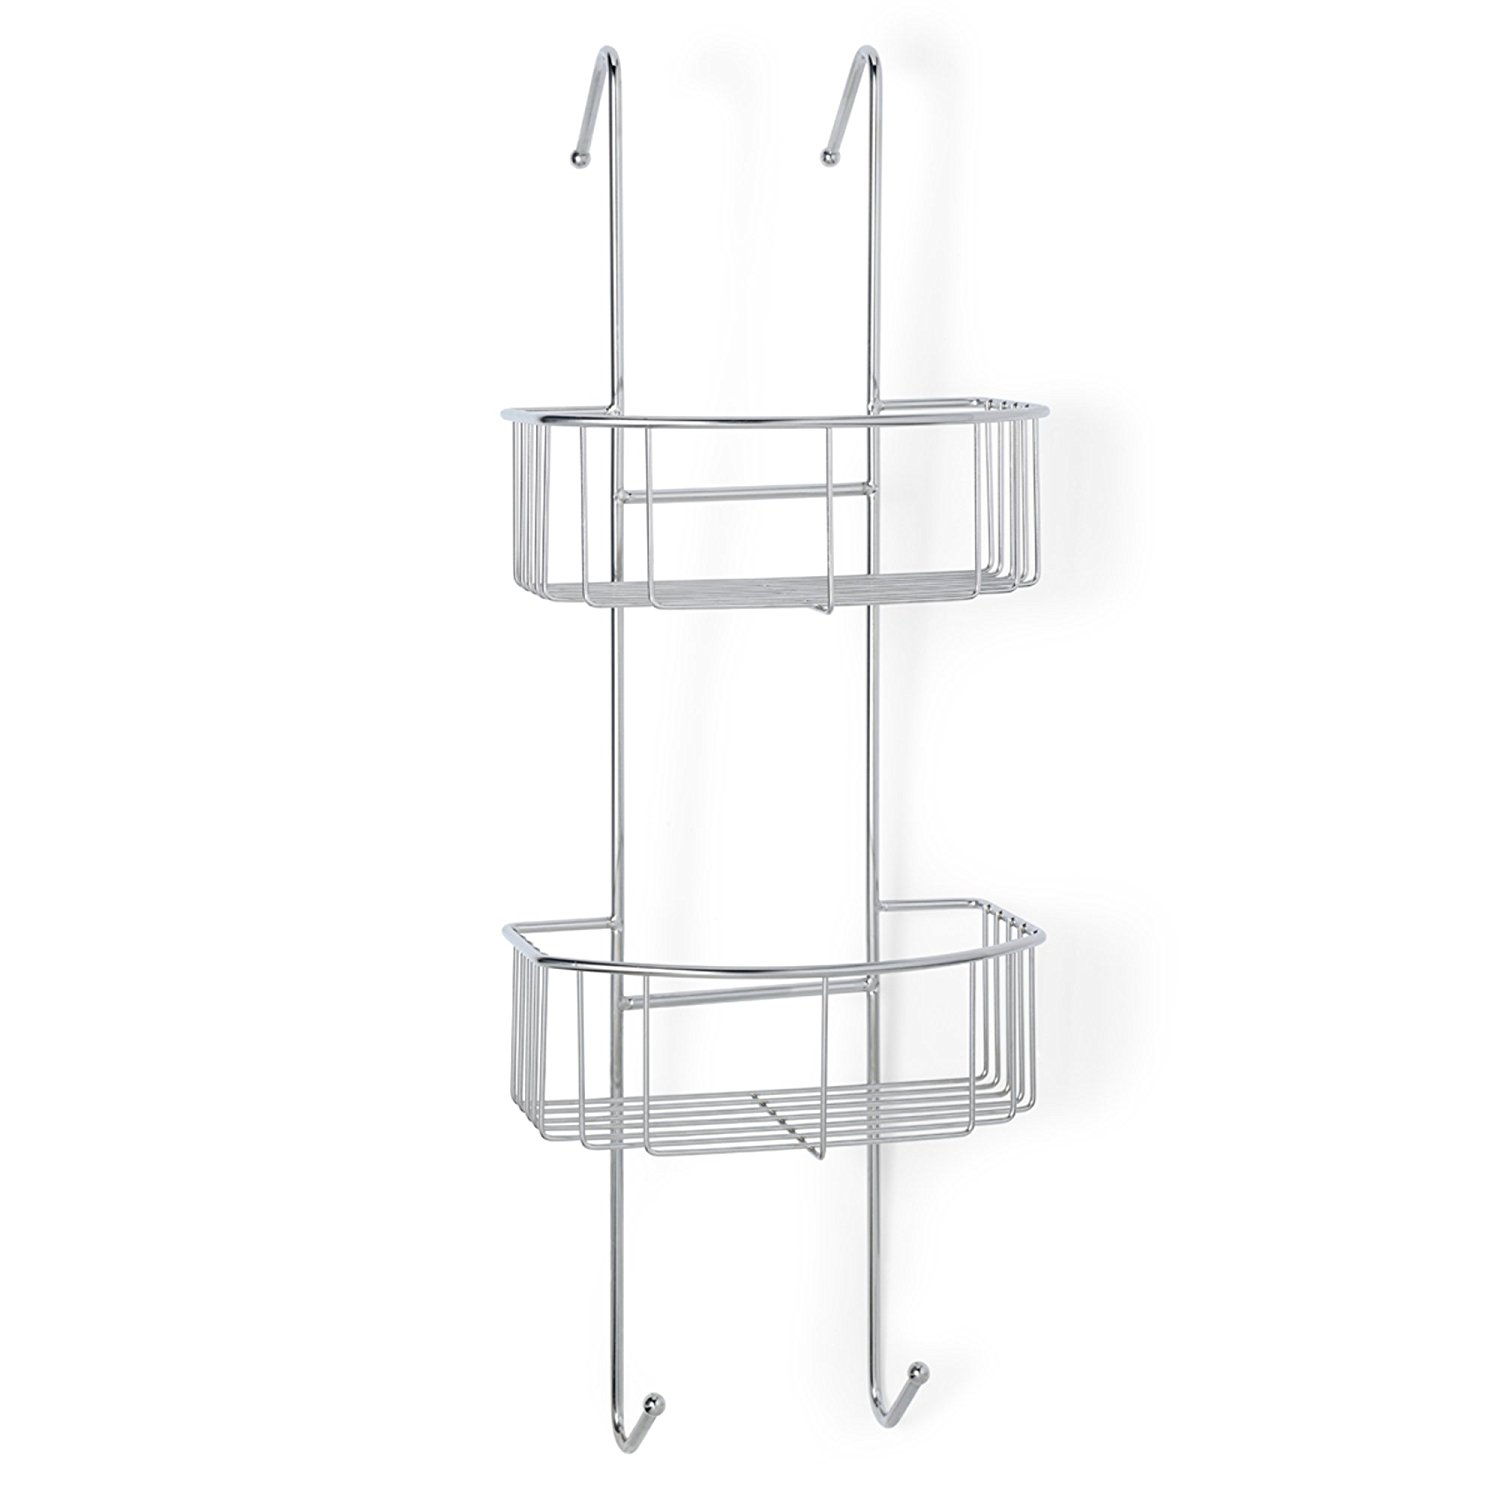 Have A Best Shower Caddy with Simplehuman Shower Caddy: Simplehuman Shower Caddy | Tension Rod Shower Caddy | Corner Tension Rod